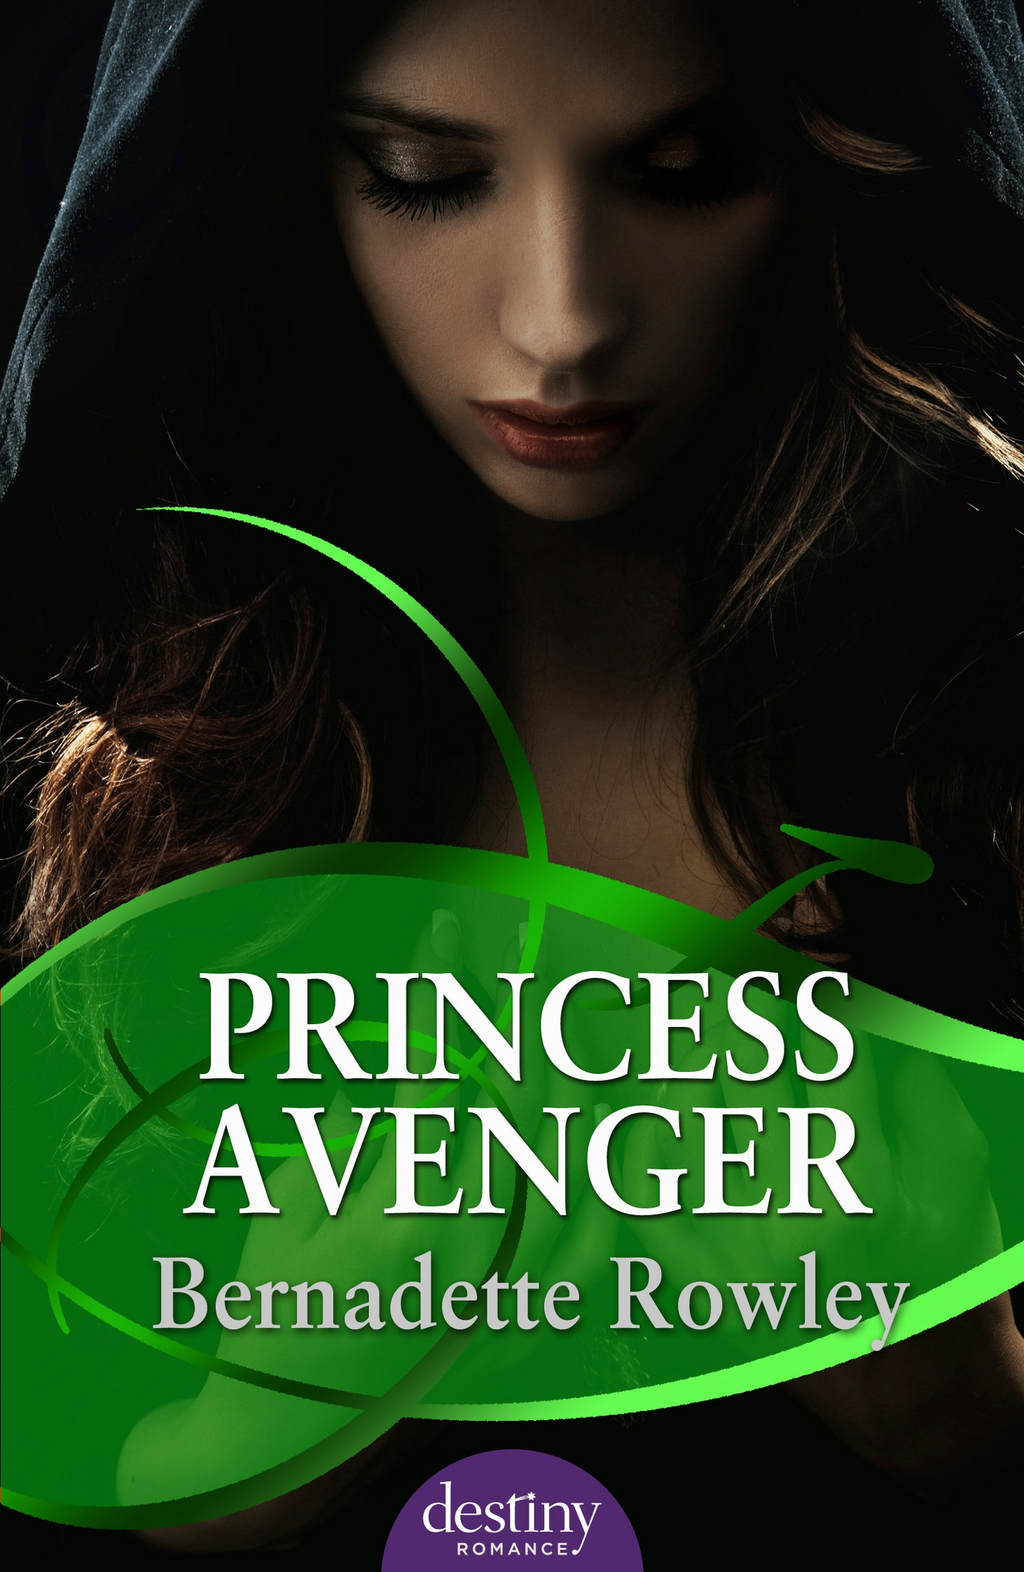 Princess Avenger